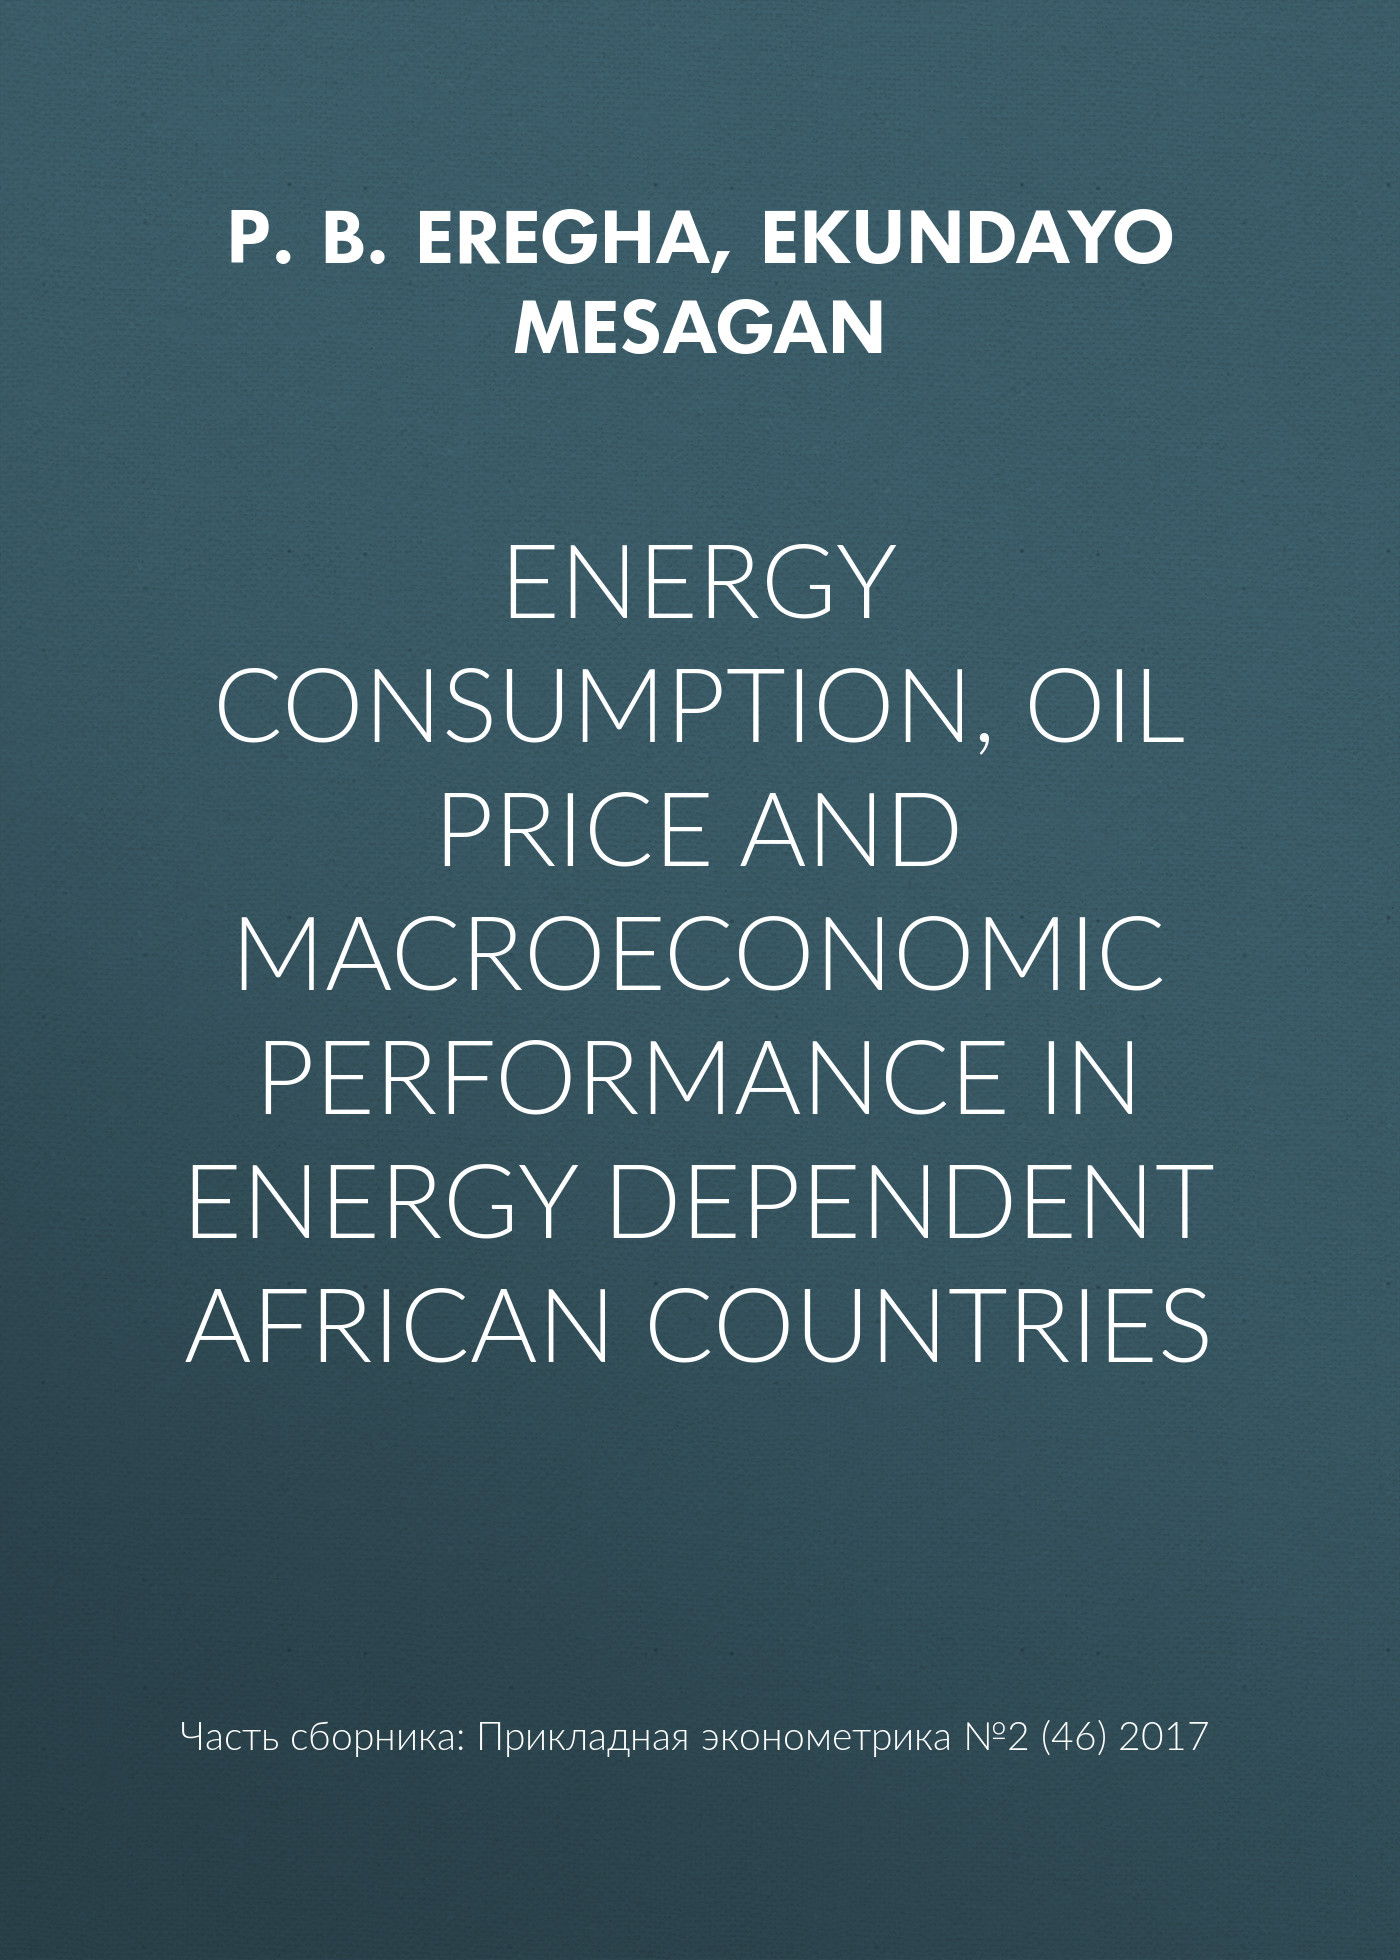 P. B. Eregha Energy consumption, oil price and macroeconomic performance in energy dependent African countries 1 piece oil press machine high oil extraction rate labor saving stainless steel oil pressure for household